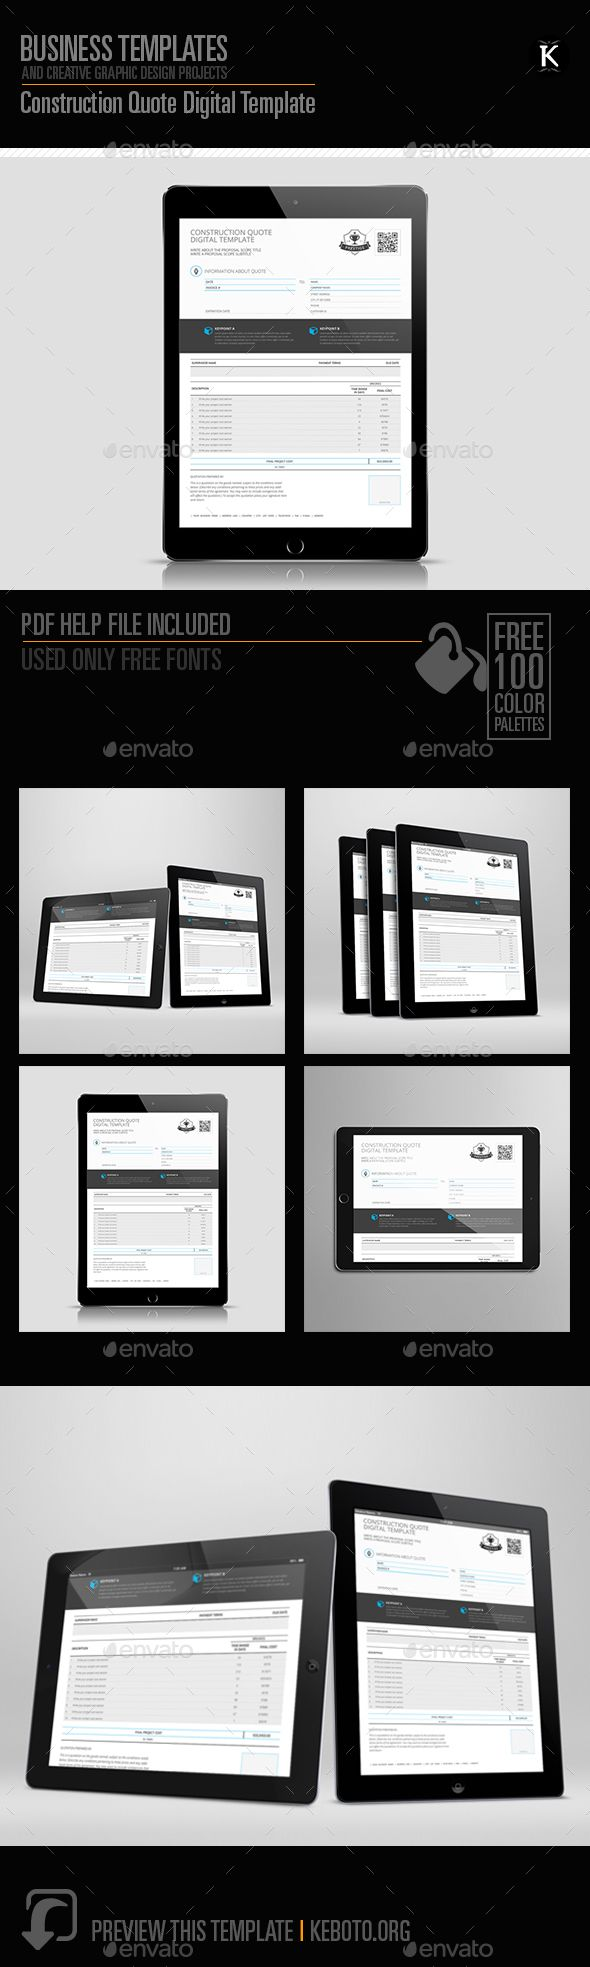 construction proposal templates%0A Construction Quote Digital Template